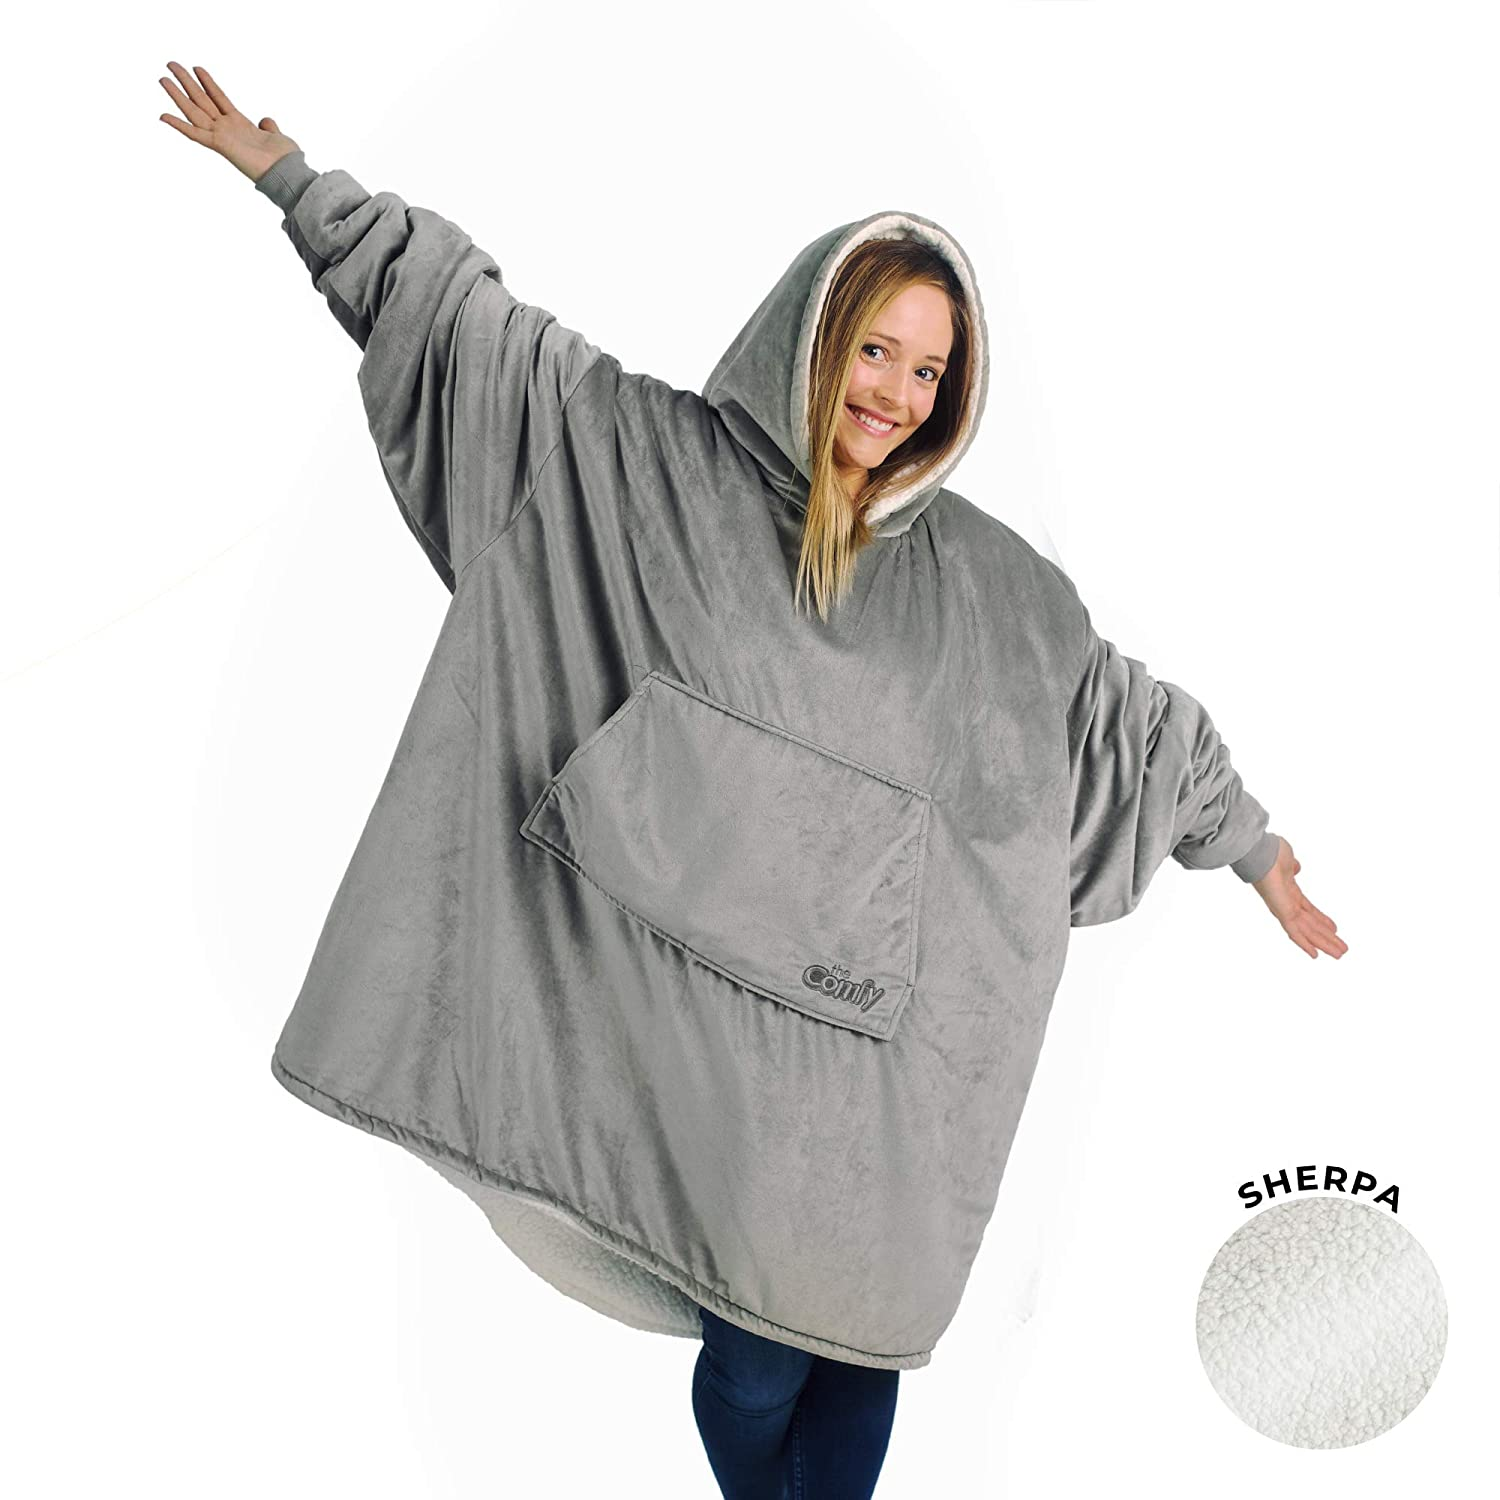 THE COMFY ORIGINAL   Oversized Microfiber & Sherpa Wearable Blanket, Seen  On Shark Tank, One Size Fits All: Buy Online at Best Price in UAE -  Amazon.ae